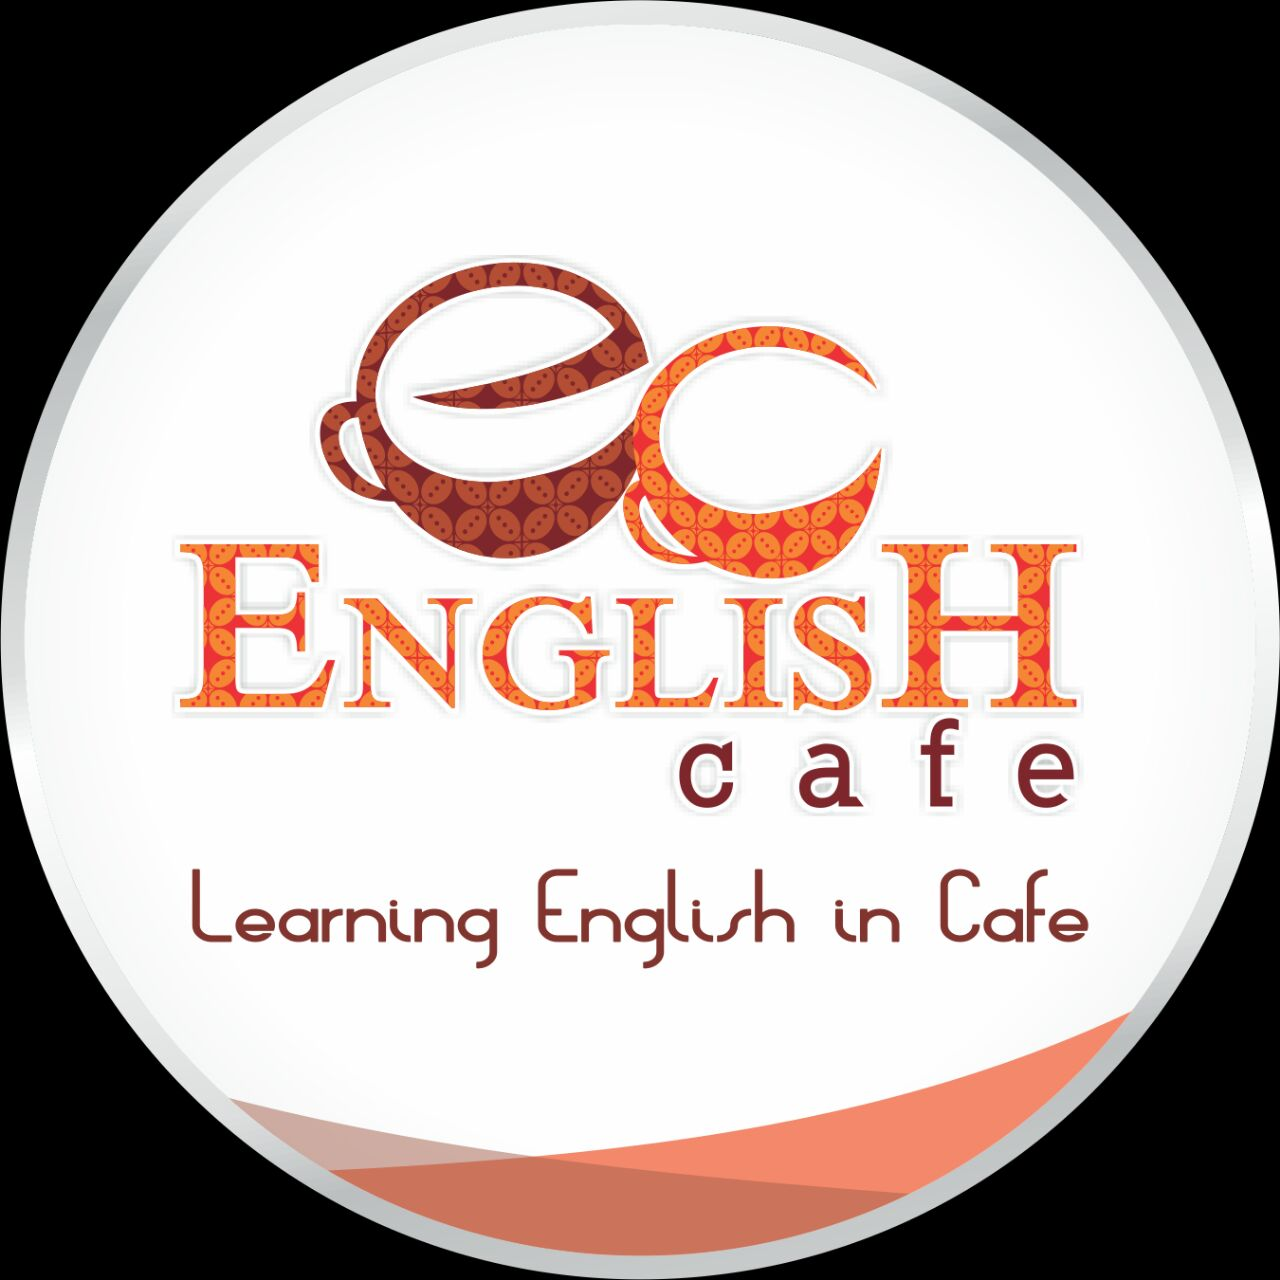 English Cafe Malang universitas negeri malang - RADAR MERAH PUTIH